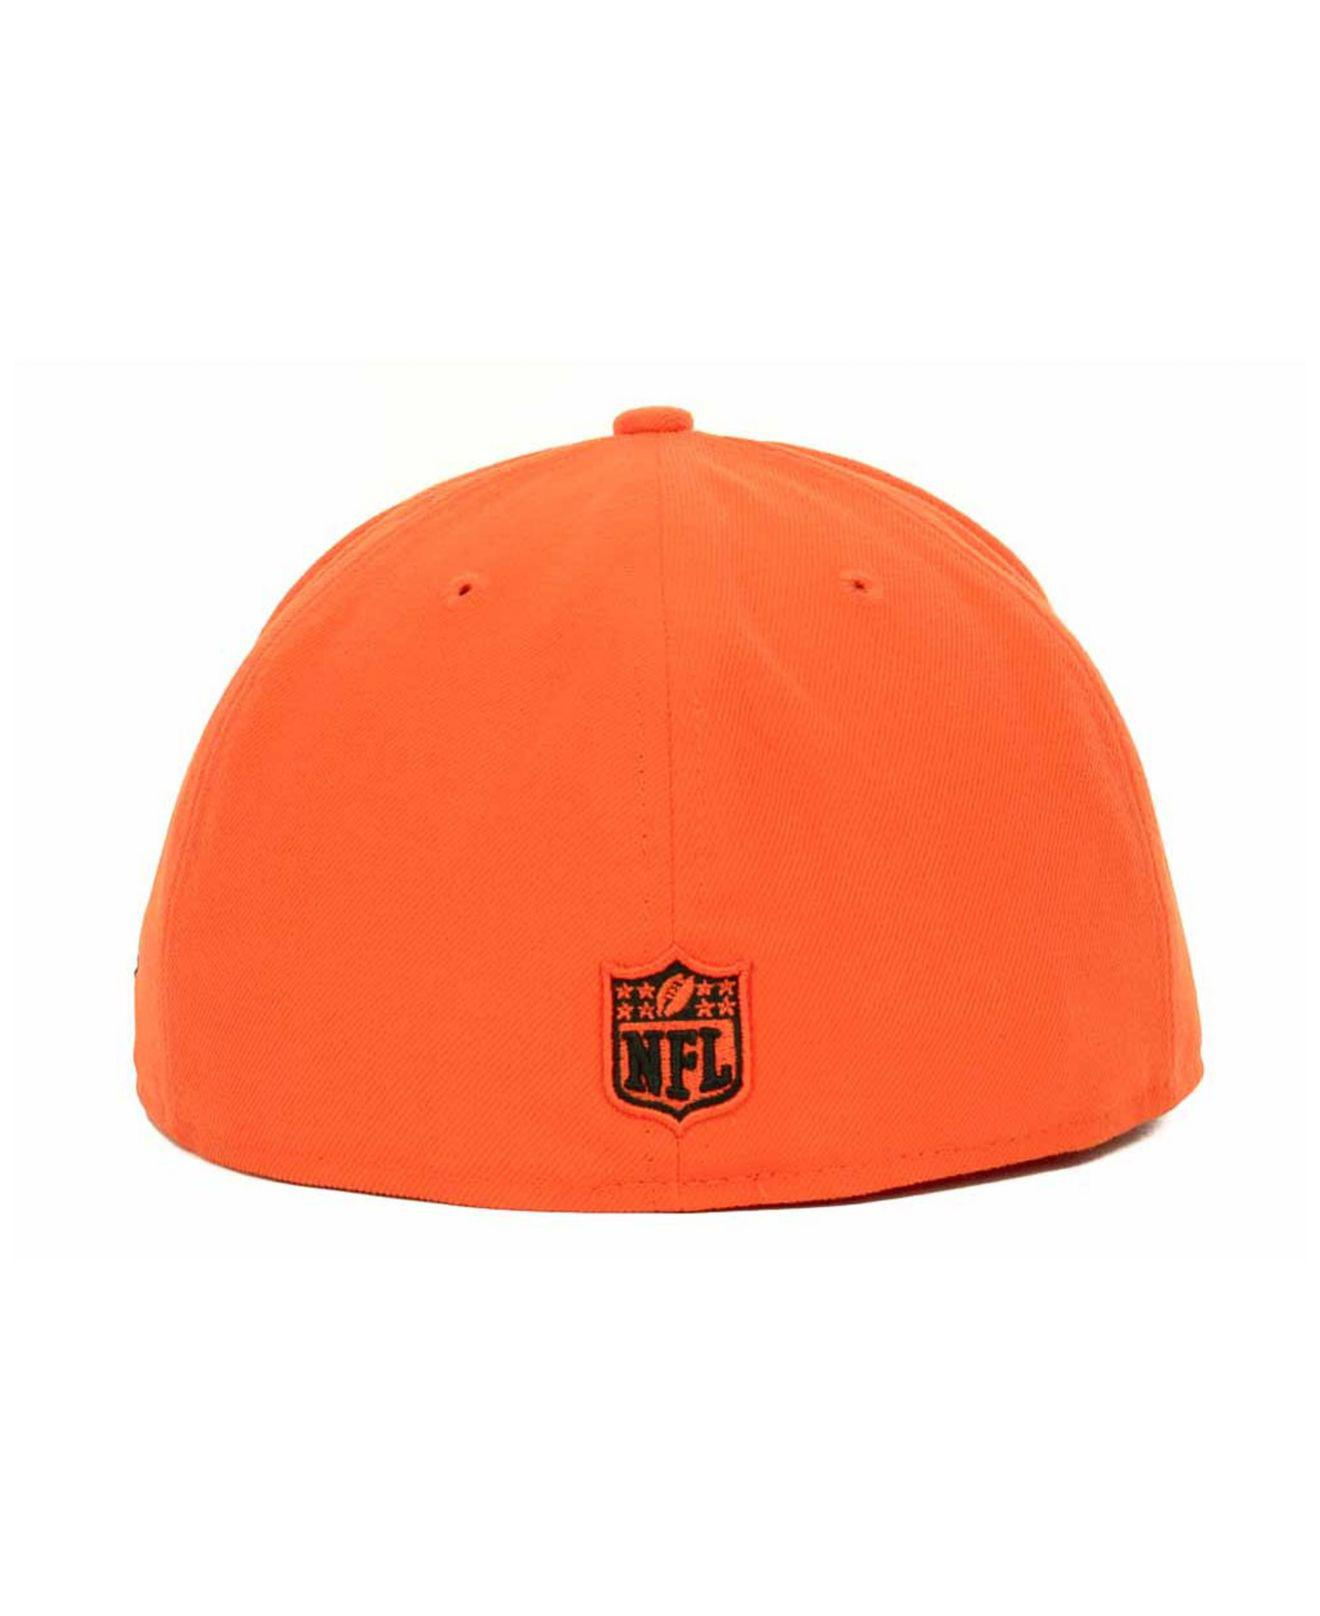 new product 16c00 a4ed4 KTZ Cincinnati Bengals Nfl 2 Tone 59fifty Fitted Cap in Orange for Men -  Lyst